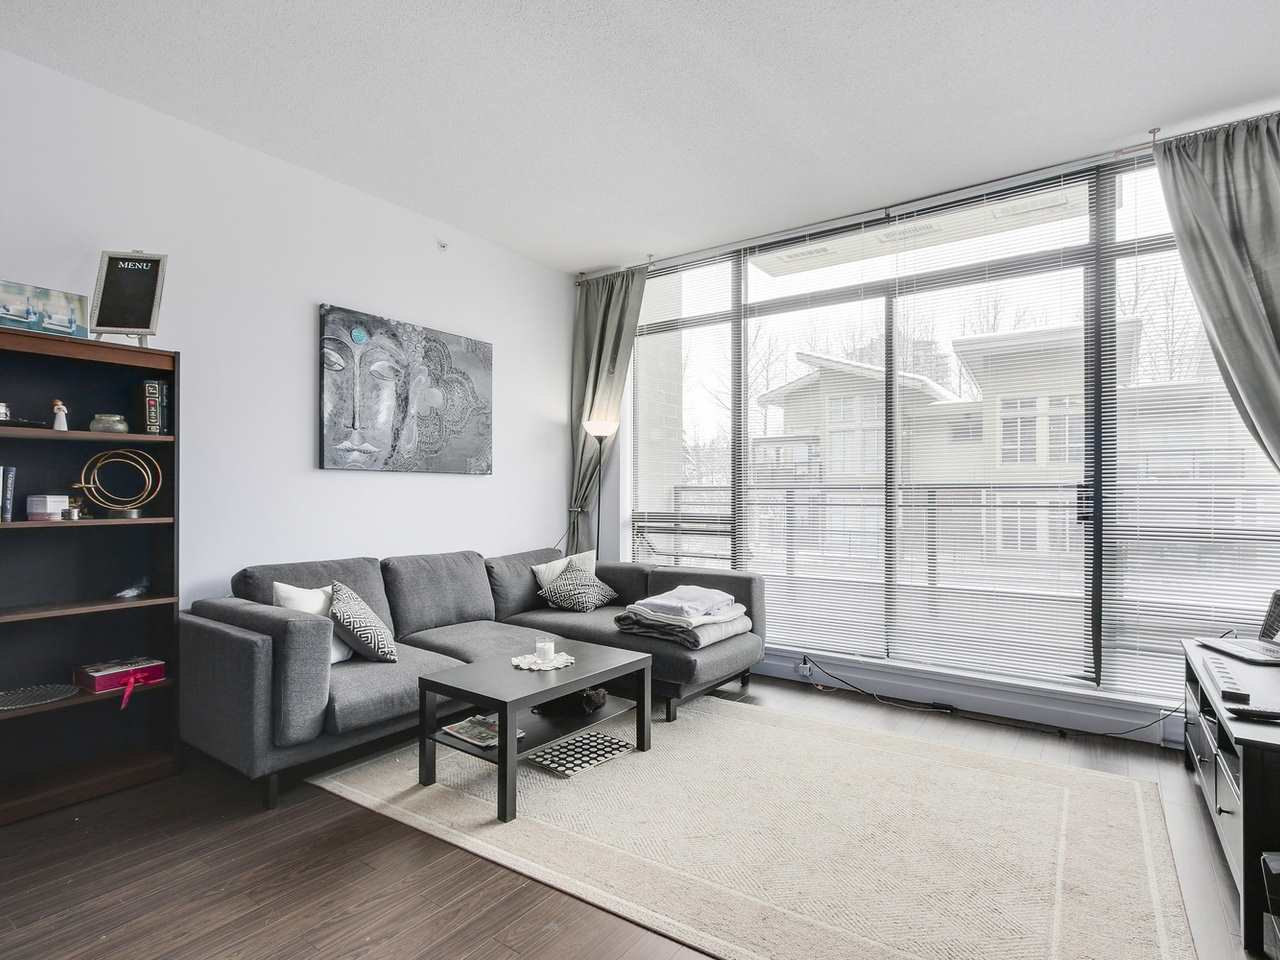 "Photo 2: 212 121 BREW Street in Port Moody: Port Moody Centre Condo for sale in ""THE ROOM"" : MLS® # R2138906"